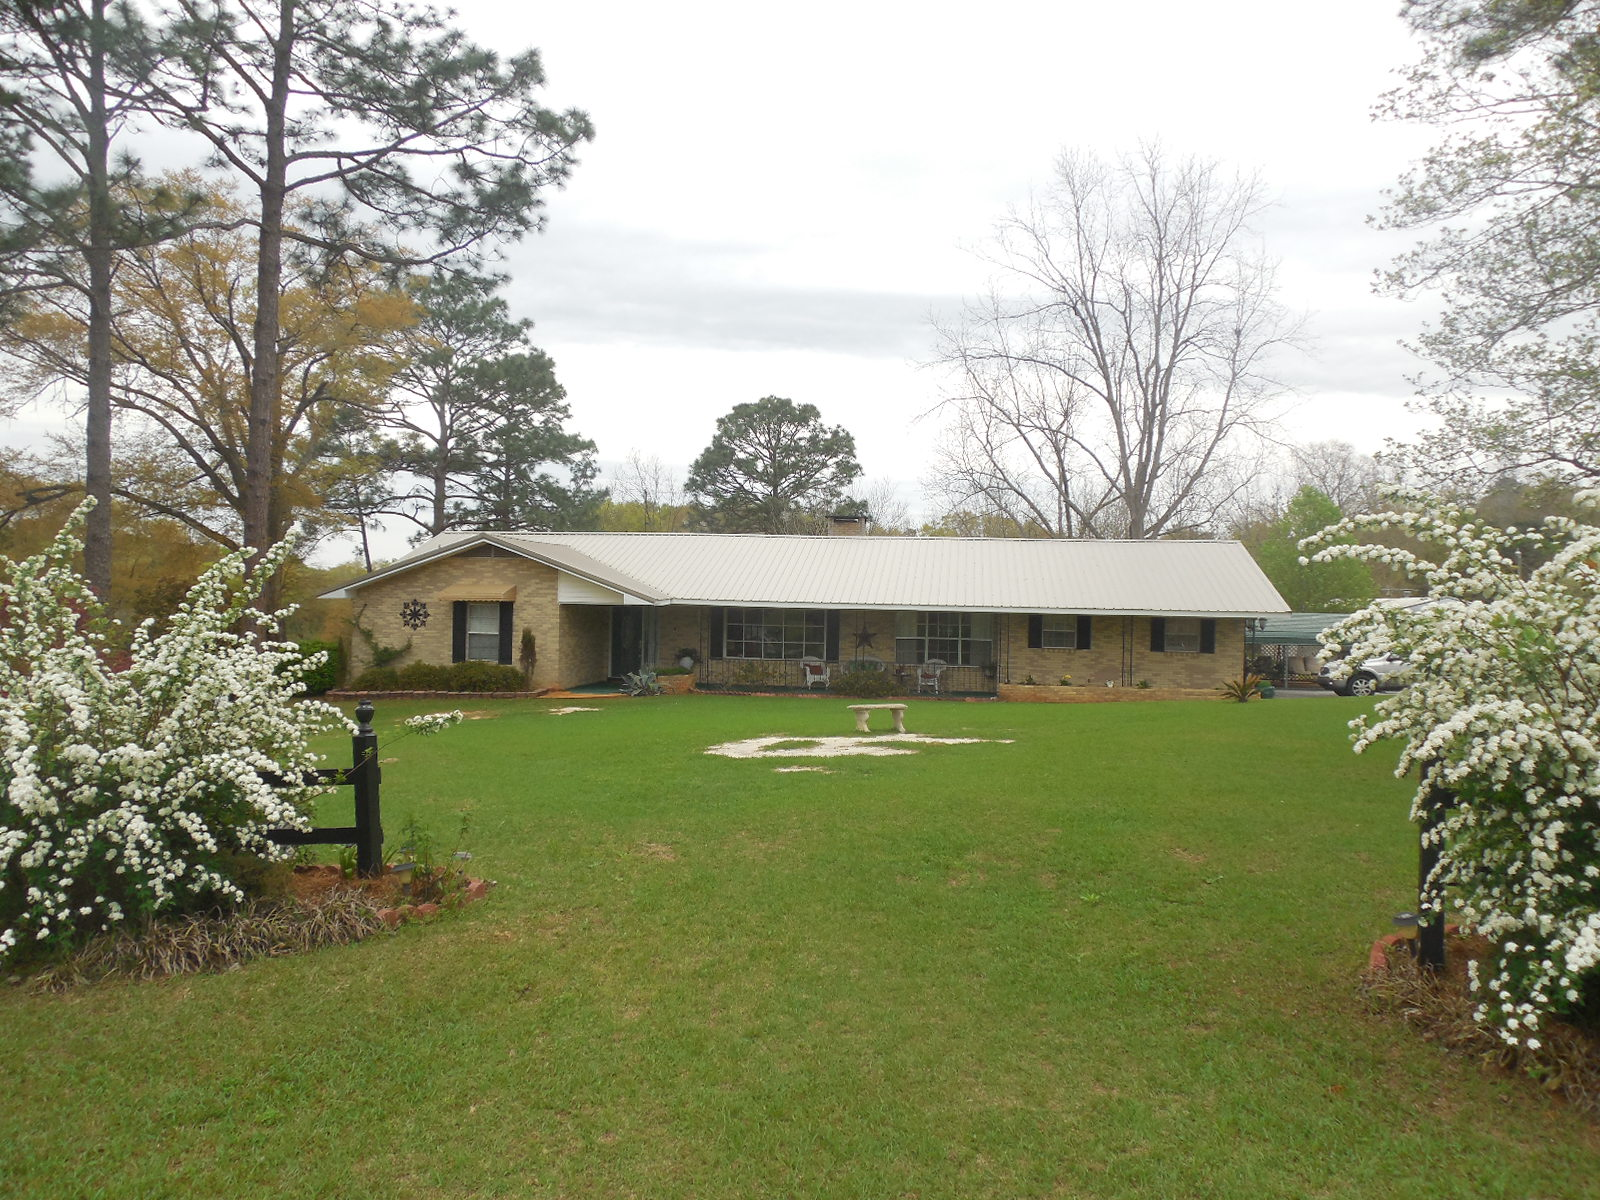 63 County Road 52, Ariton, Alabama 36311